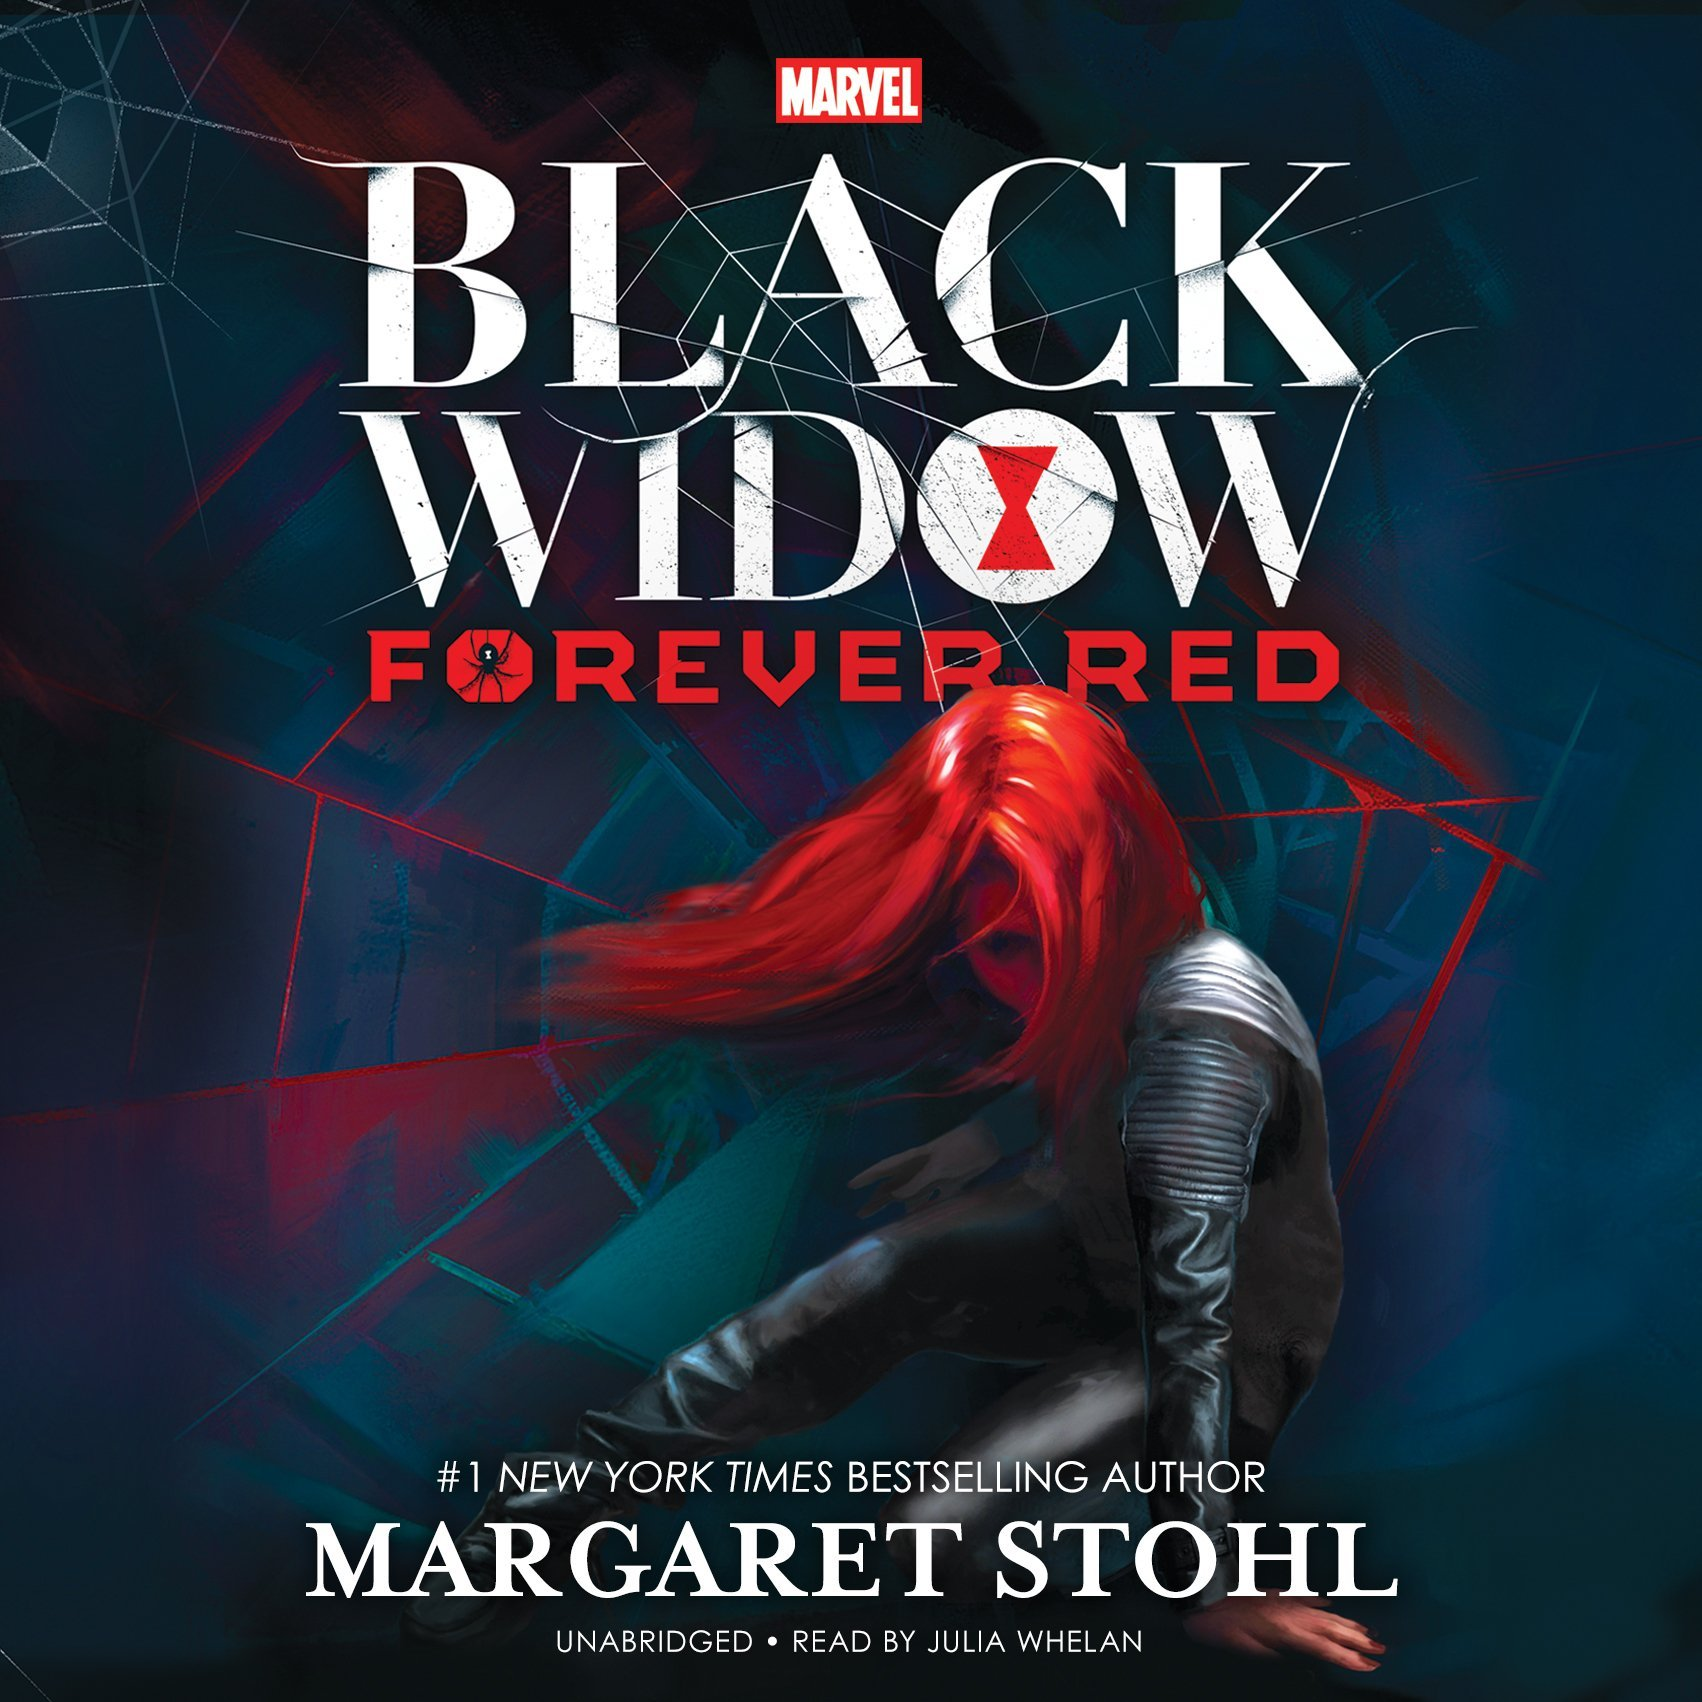 Marvels Black Widow: Forever Red Margaret Stohl